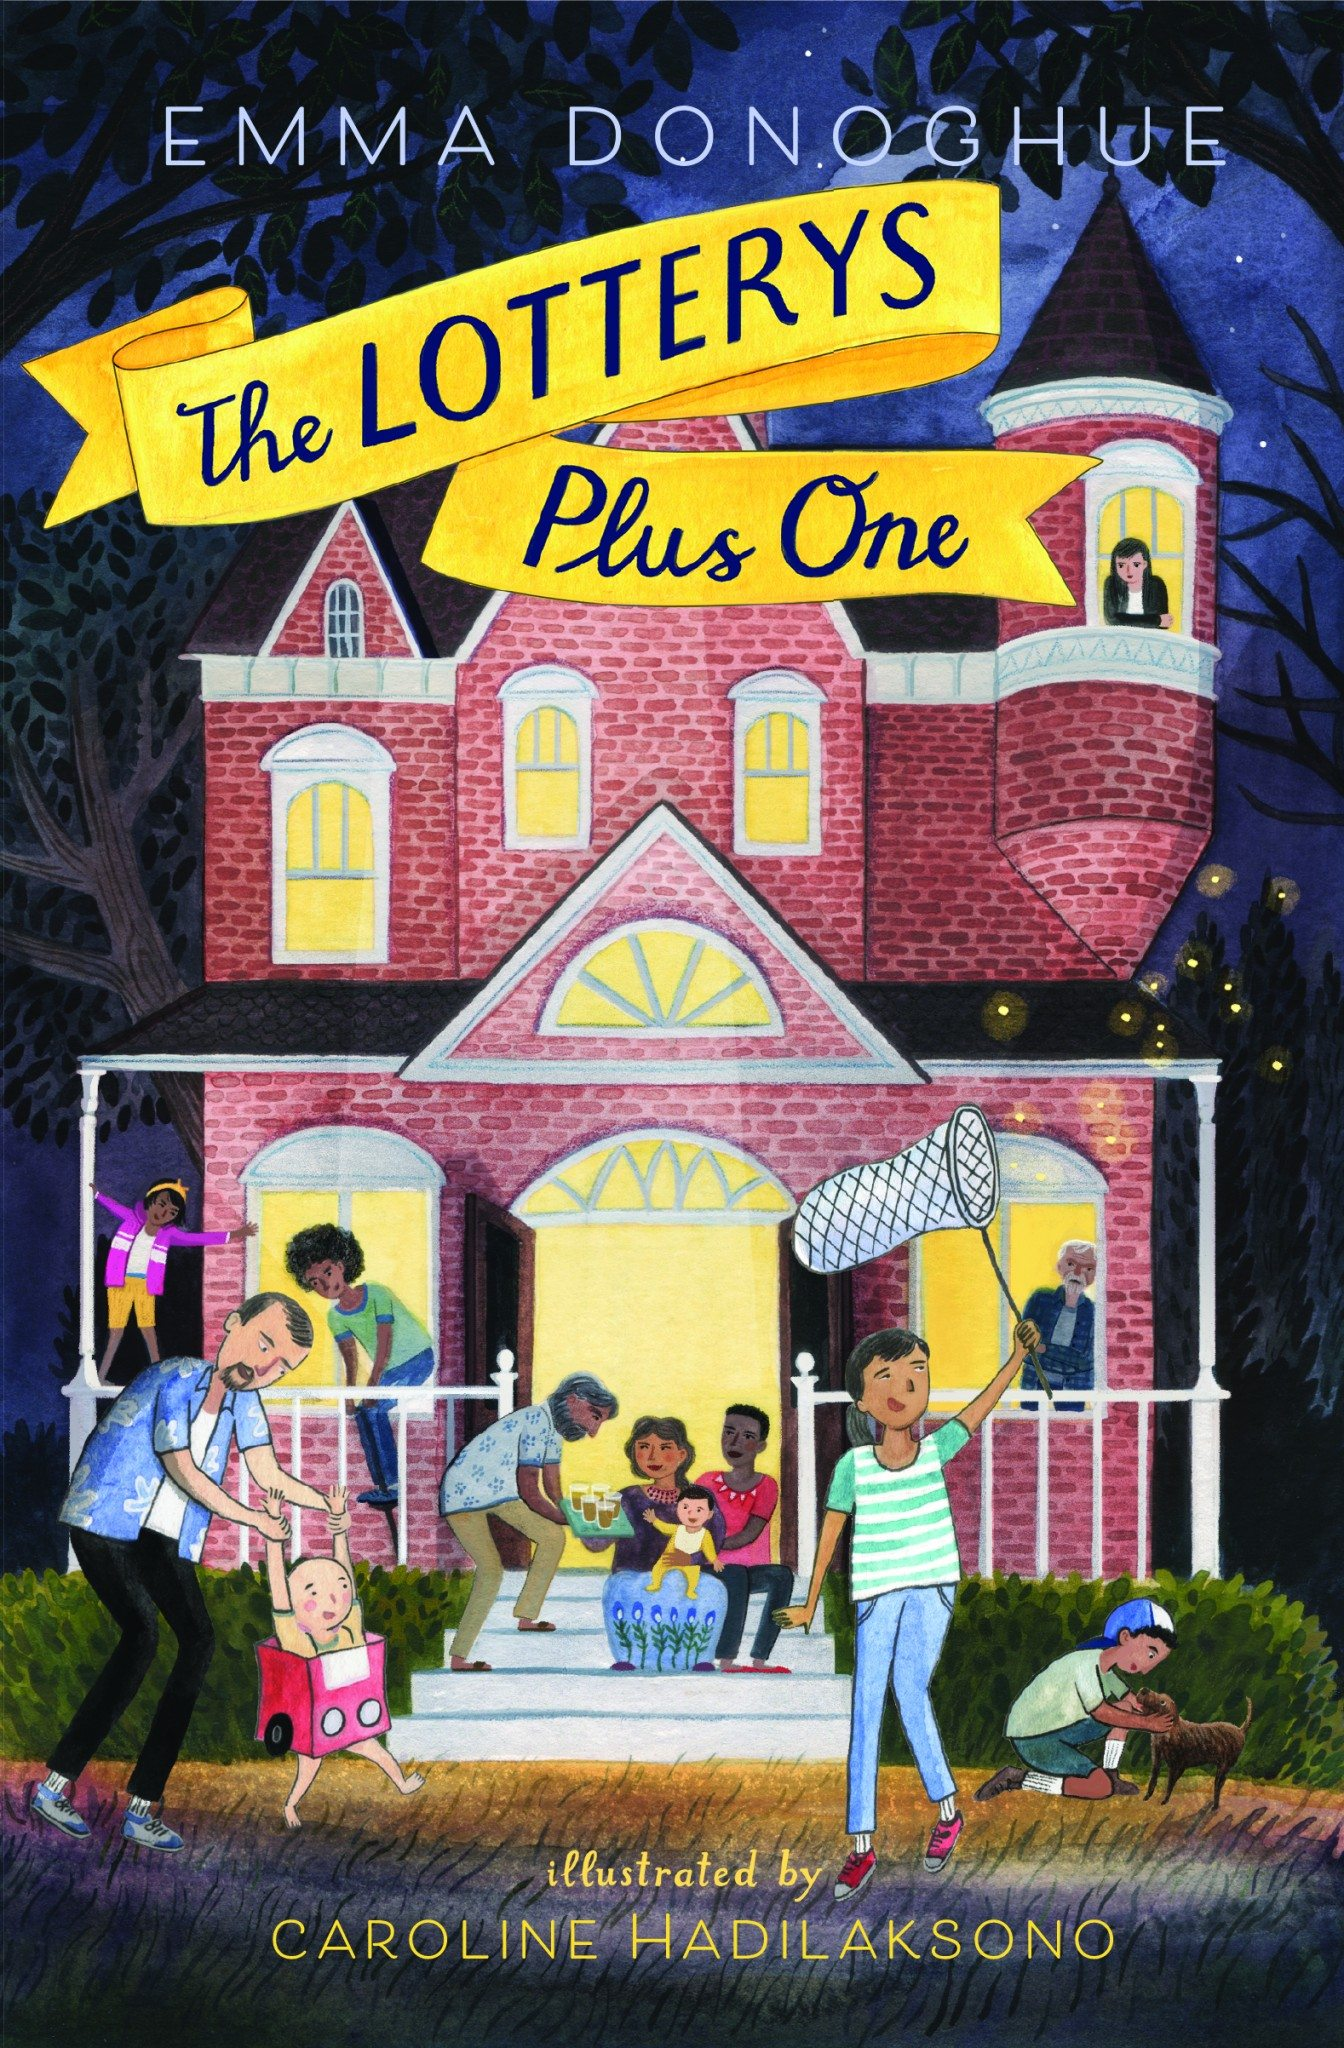 The Lotterys Plus One, Emma Donoghue (HarperCollins, March 2017)